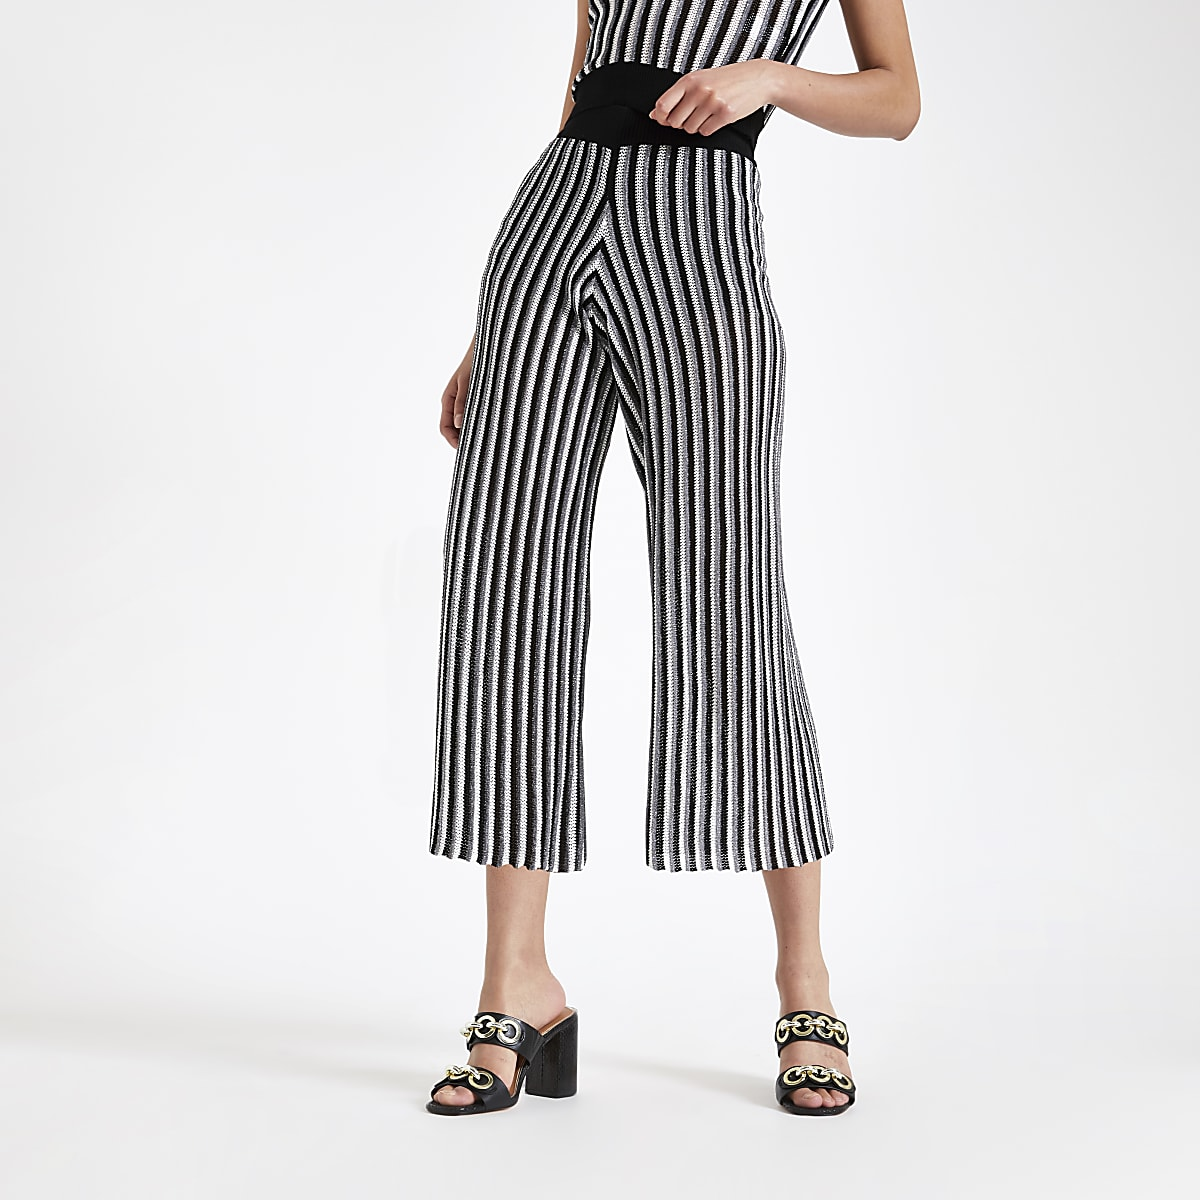 Black stripe knitted pants